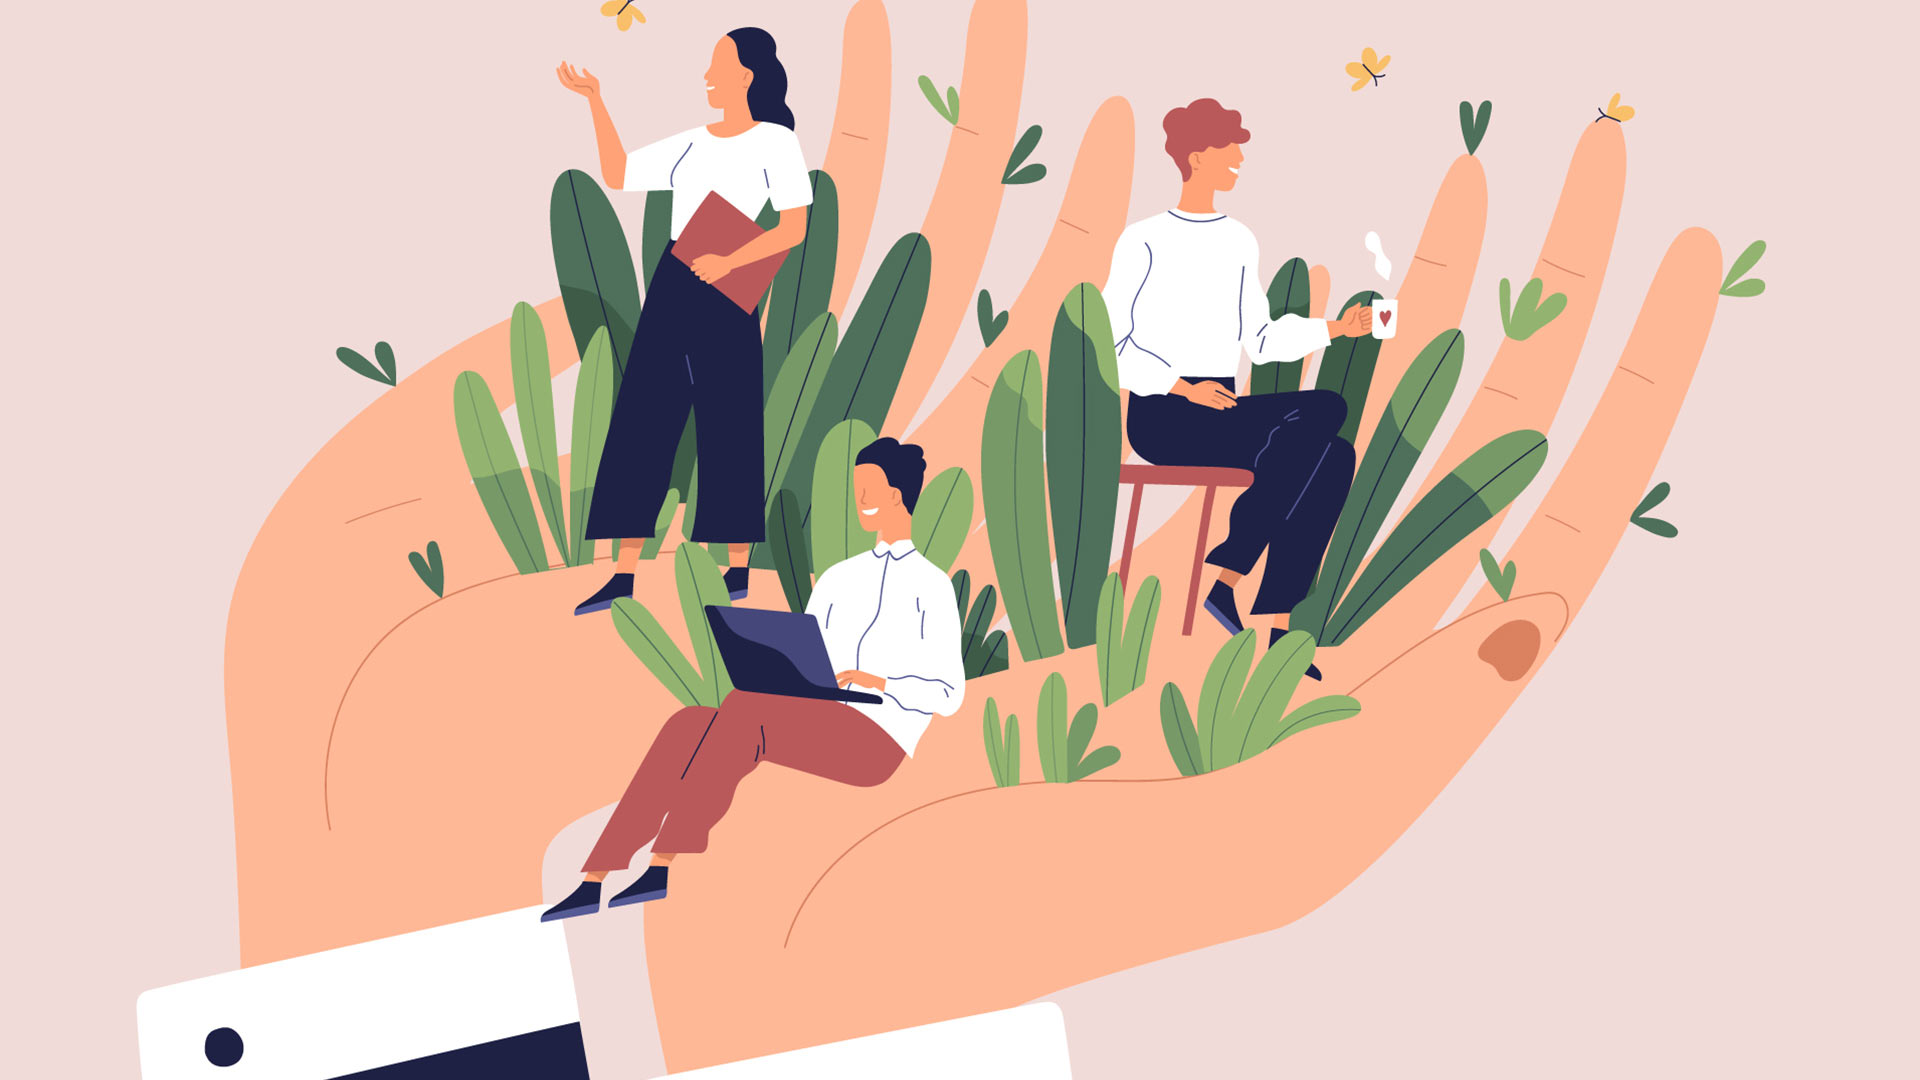 7 Strategies to Improve Your Employees' Health and Well-Being